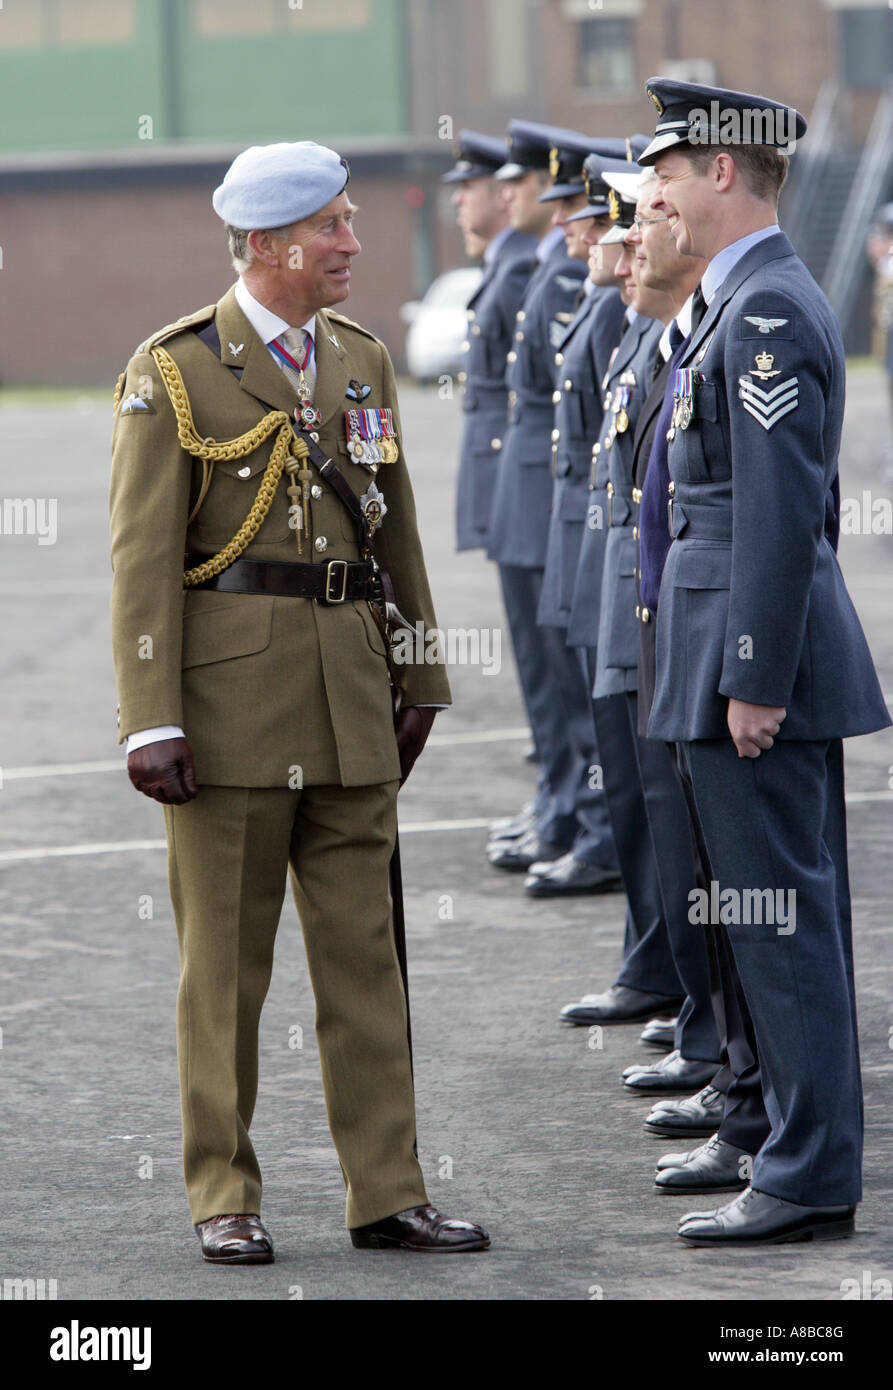 HRH Prince Charles, The Prince of Wales inspects officers at RAF Shawbury, the Helicopter Flying School - Stock Image